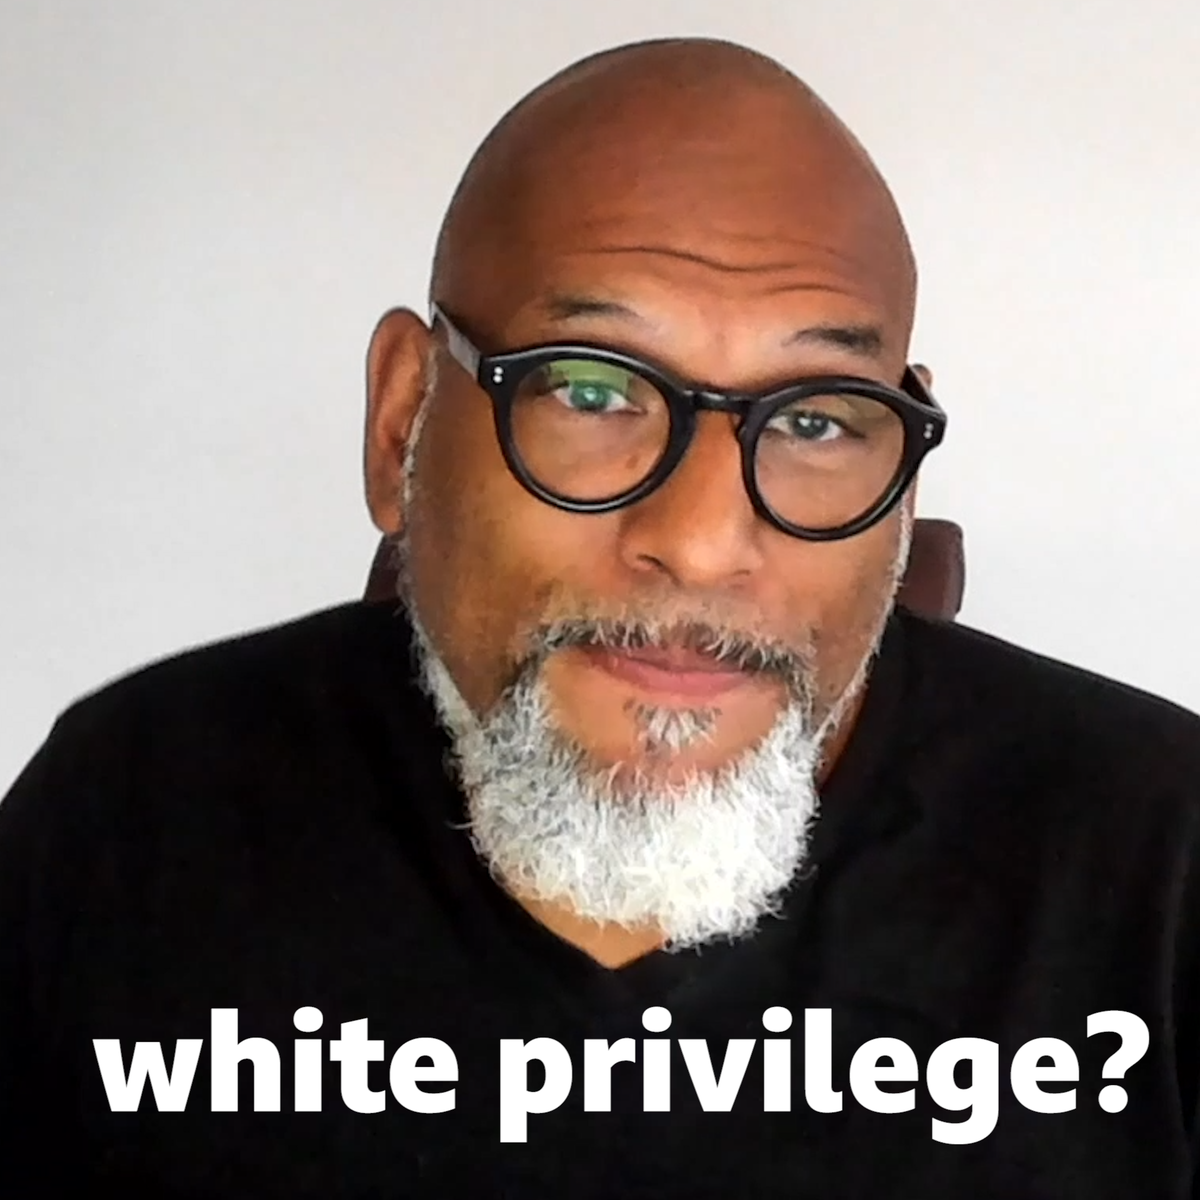 What is white privilege?   We asked @JohnAmaechi, psychologist, best-selling author and former NBA basketball player to explain it for us.  👉 https://t.co/t7LIENTnPn https://t.co/mQrYX6Y0N1